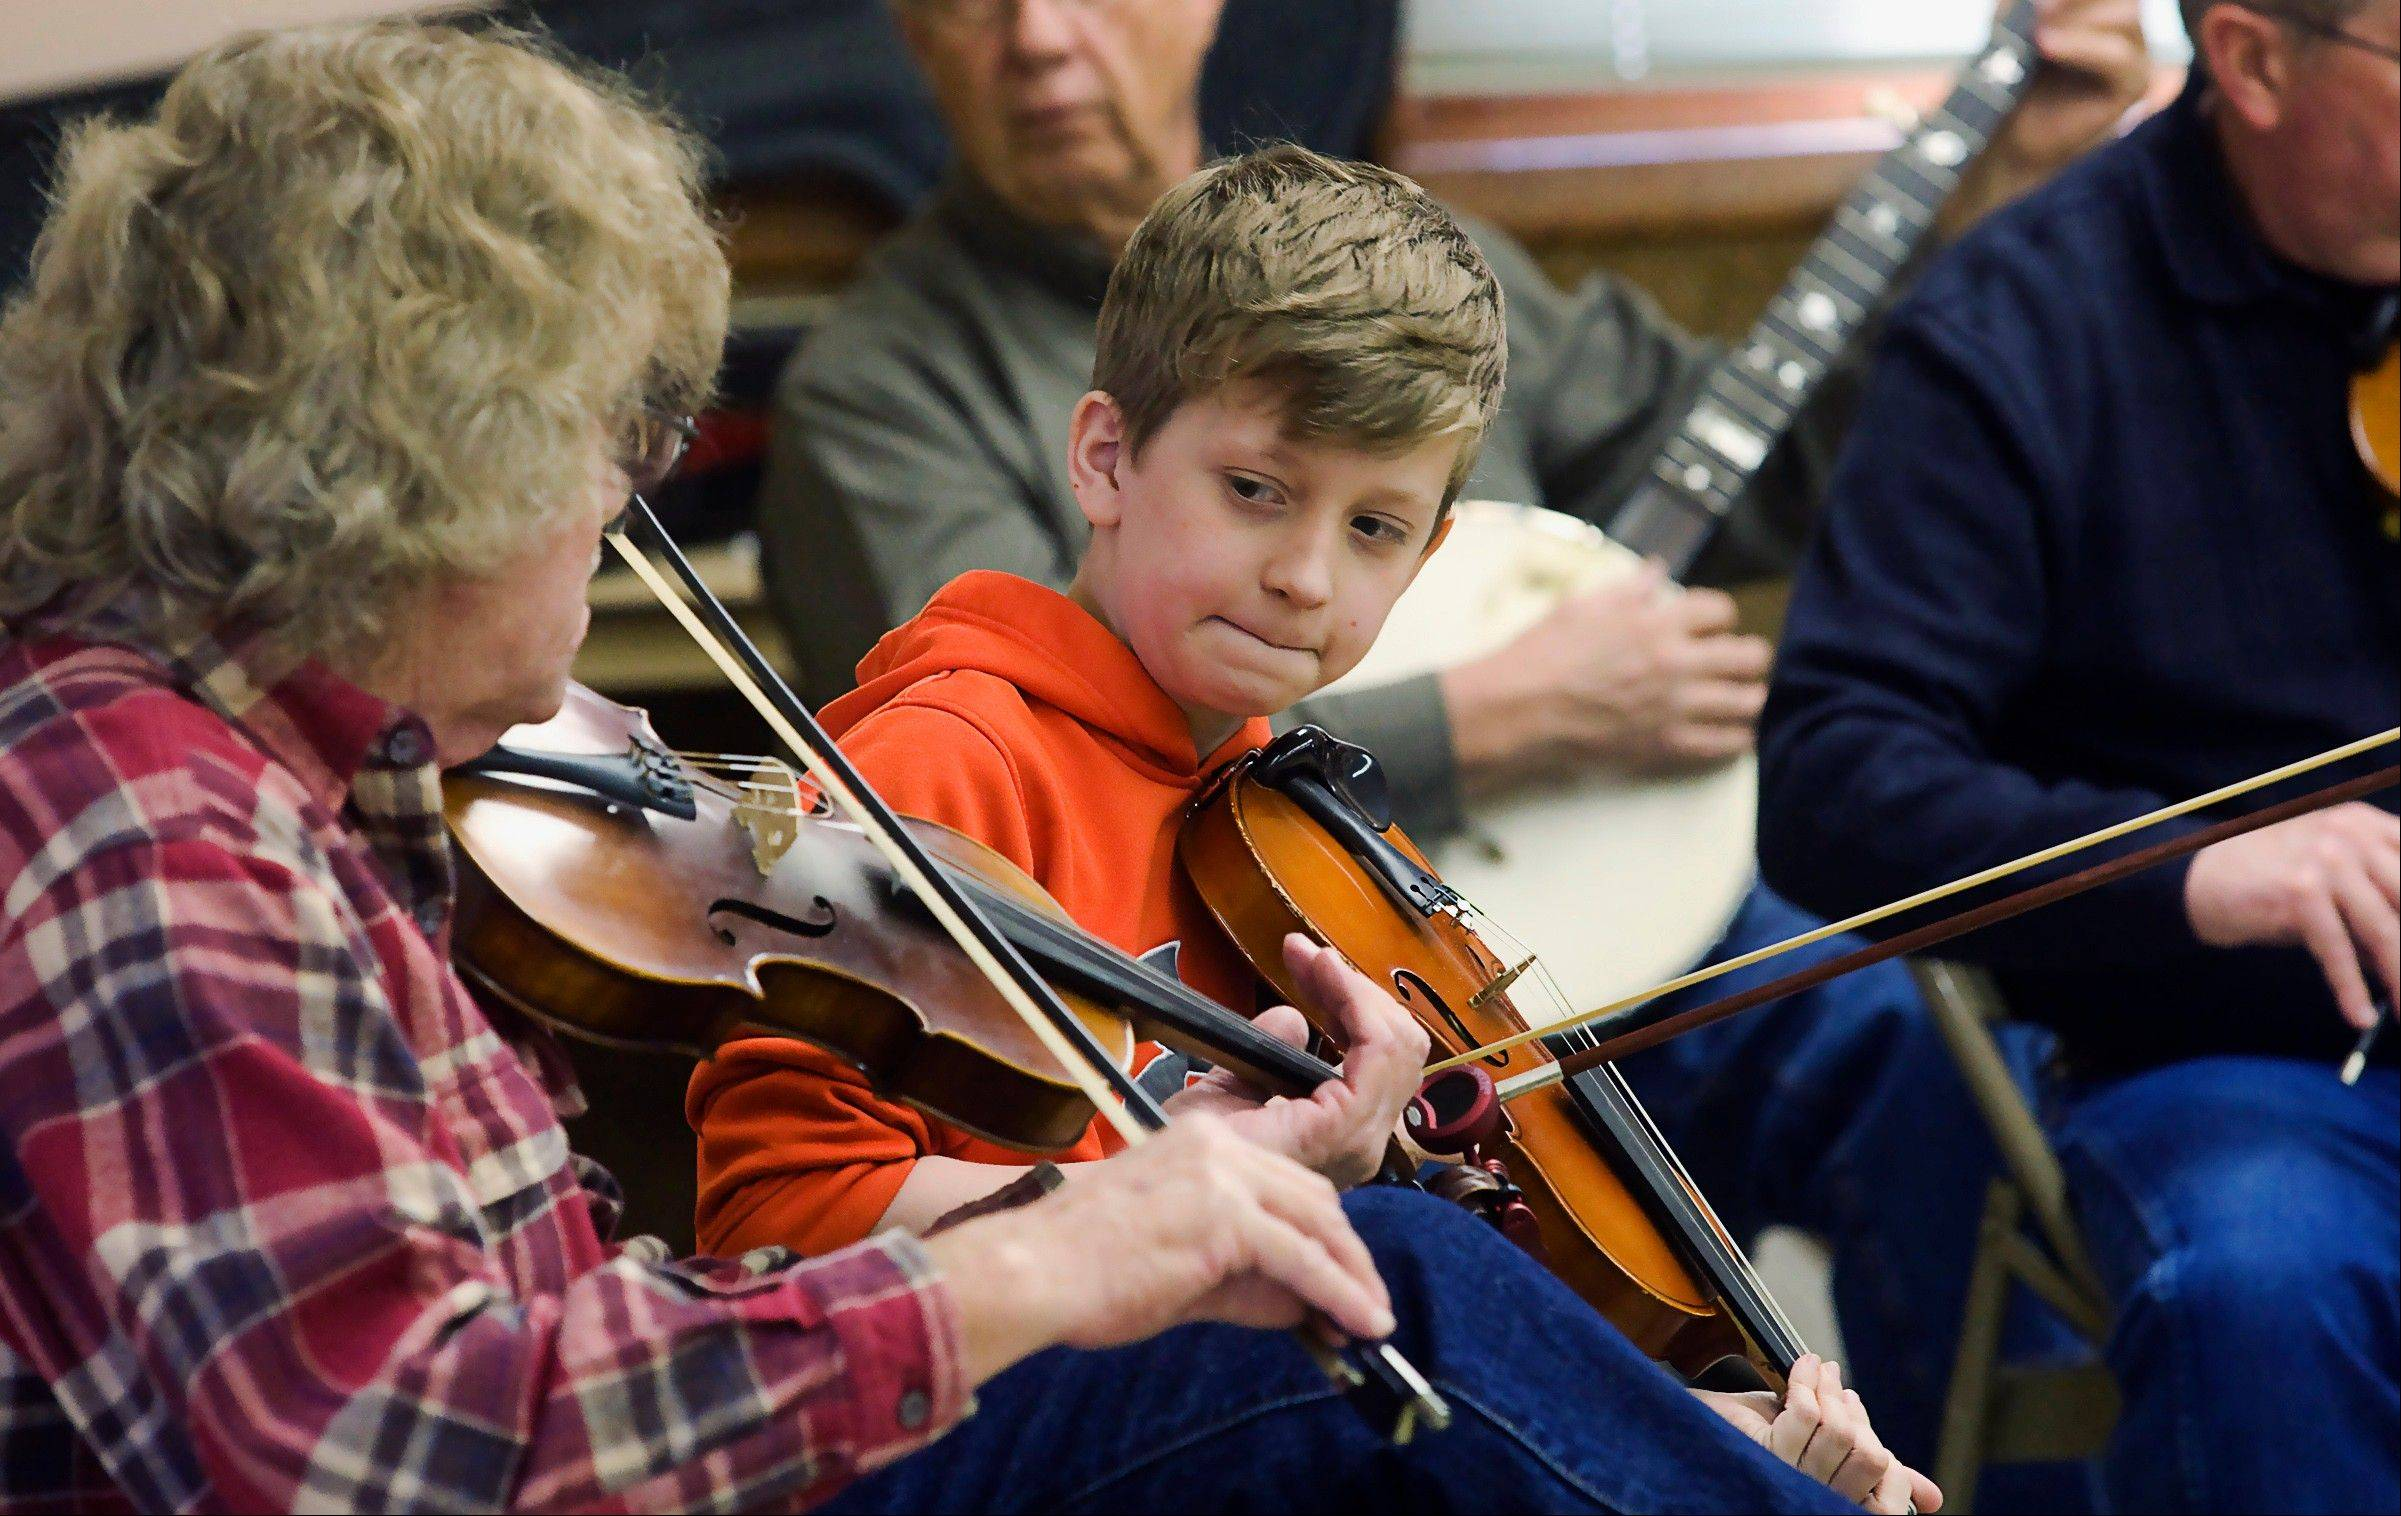 Dylan Haugh looks to his grandfather, Mike Haugh, as they play during the Illinois Old Time Fiddlers Association monthly jam in Shelbyville.